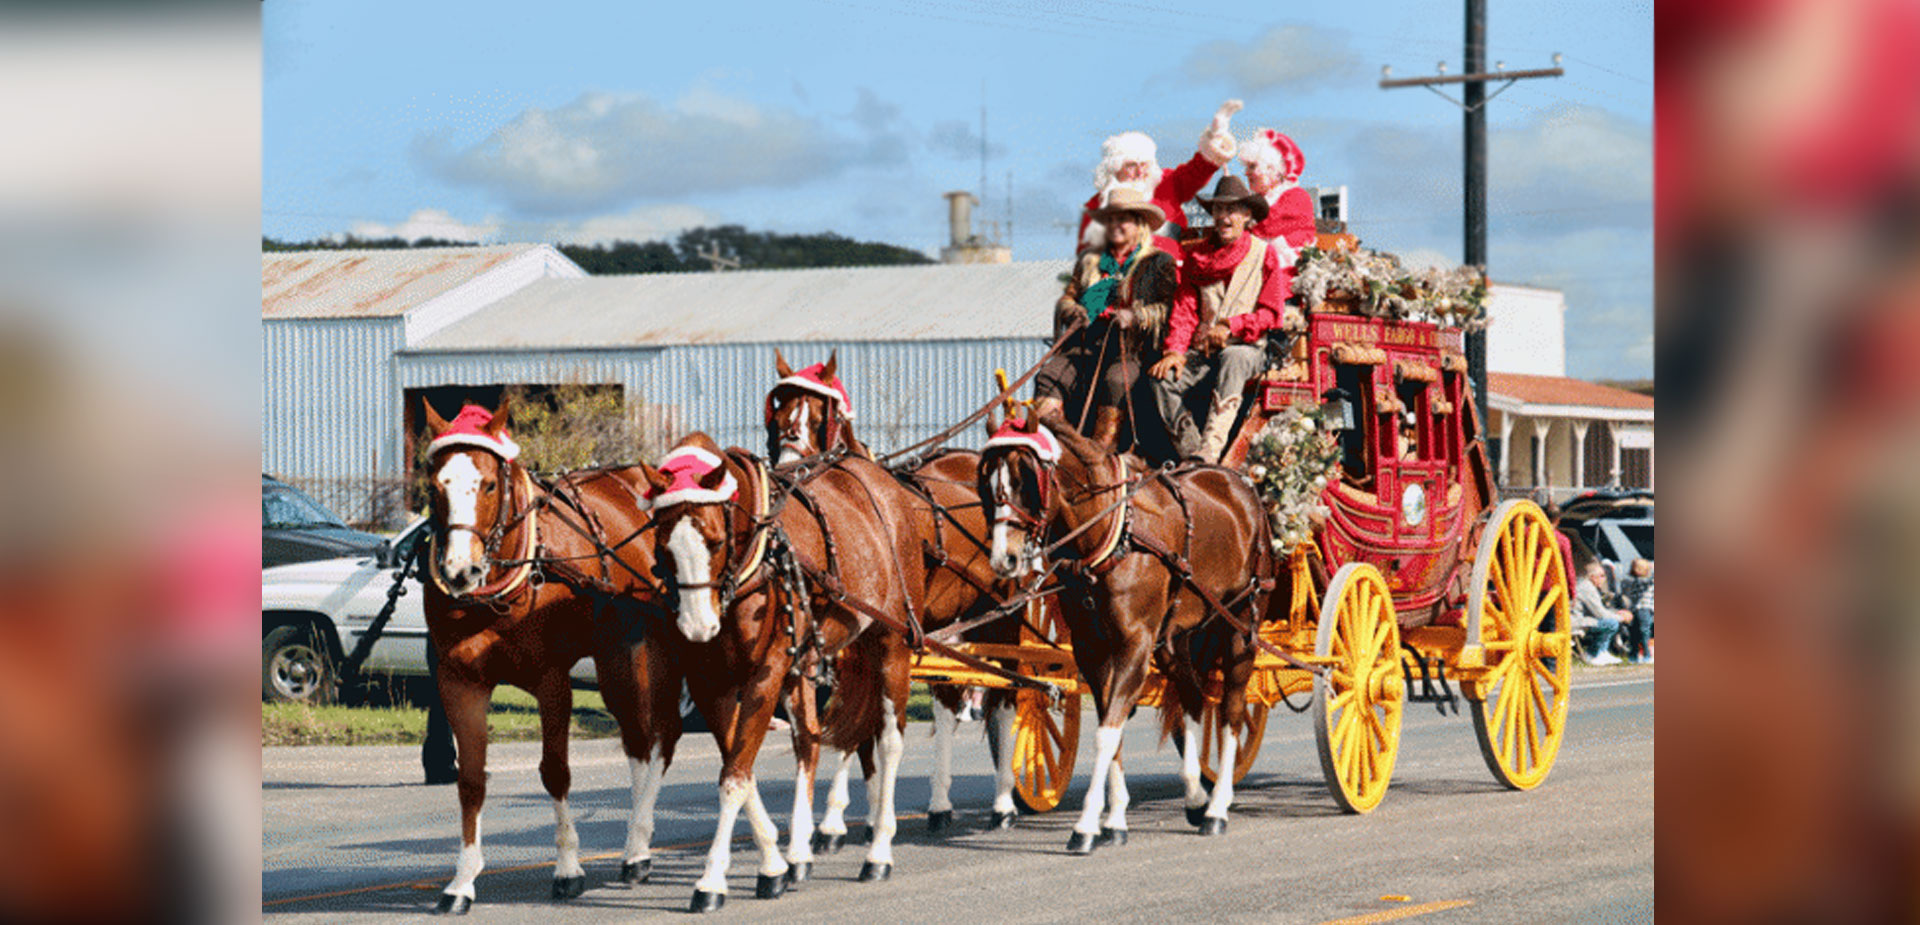 Don't Miss Saturday's Parade!